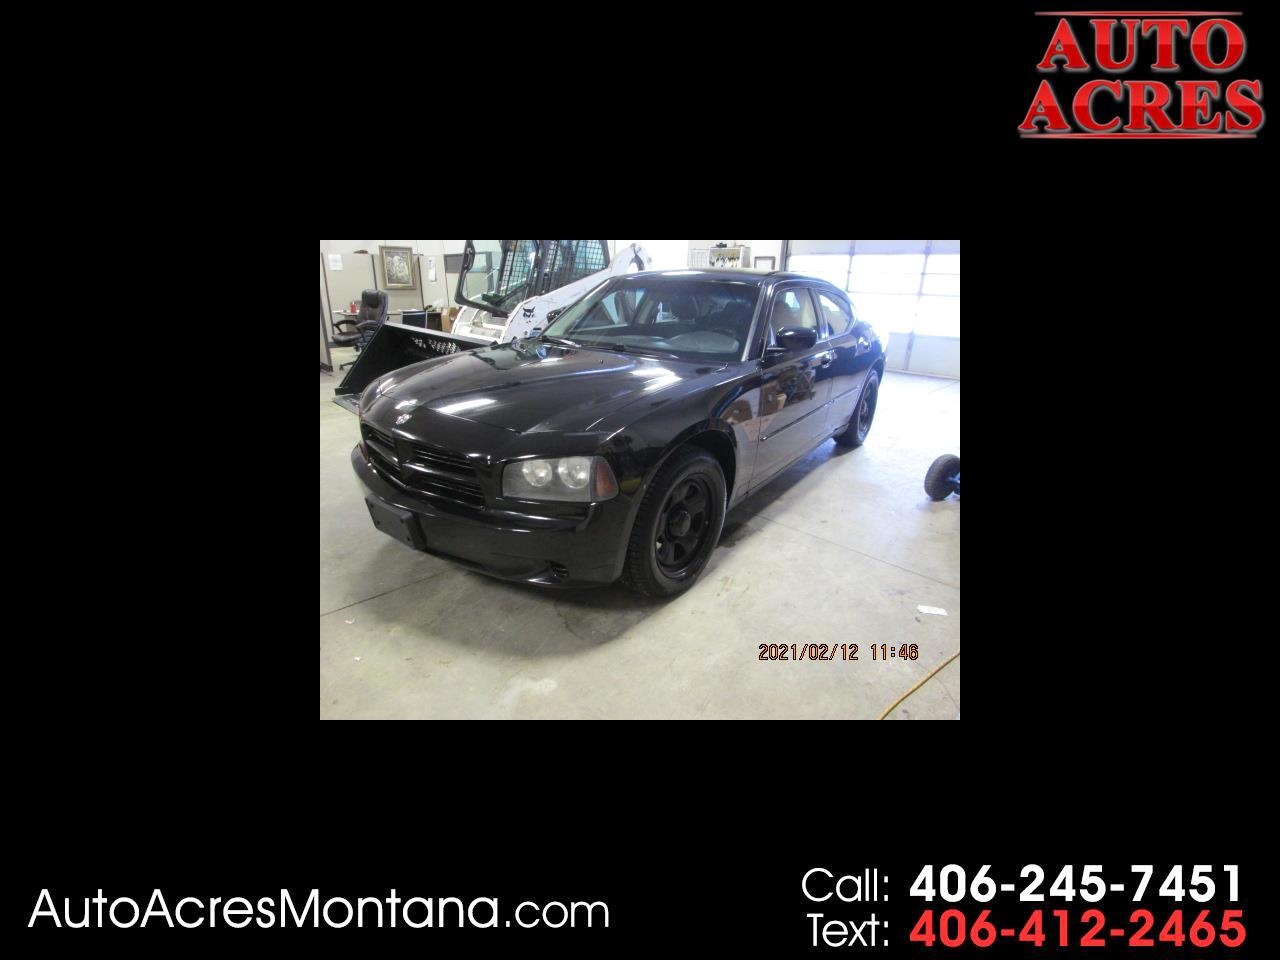 Dodge Charger 4dr Sdn Police RWD 2008